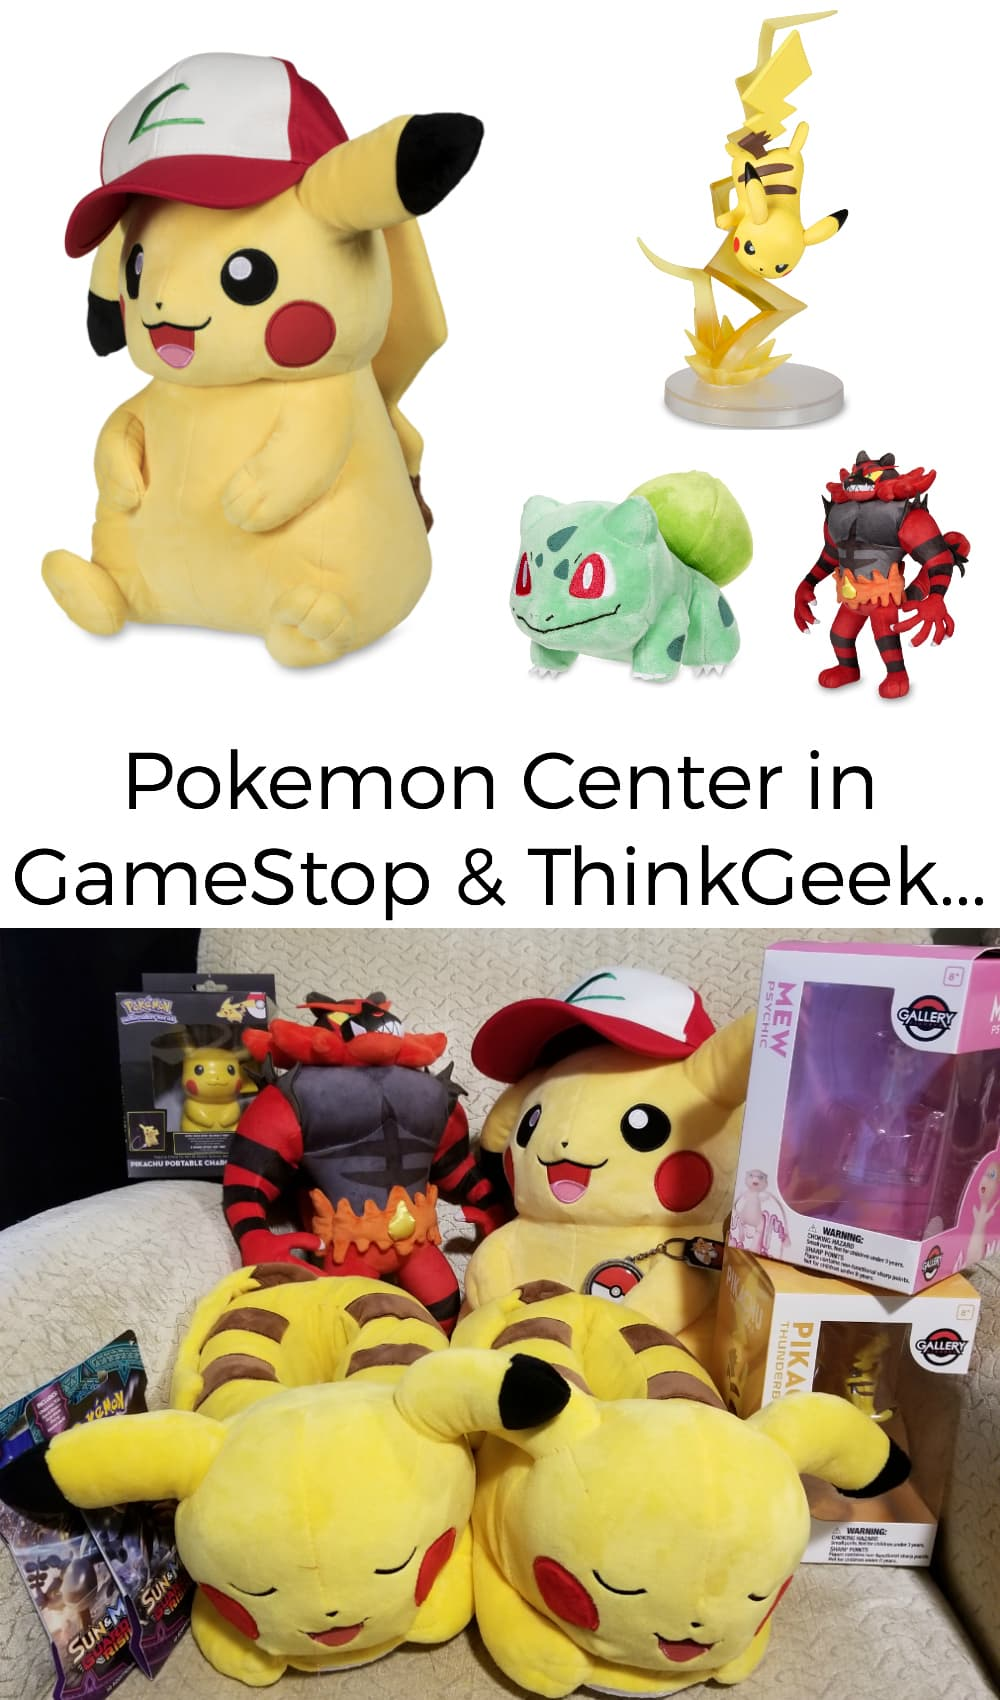 Awesome Pokemon merchandise is now available at GameStop and ThinkGeek in the Pokemon Center! #pokemon #gamestop #gadgets #gamers